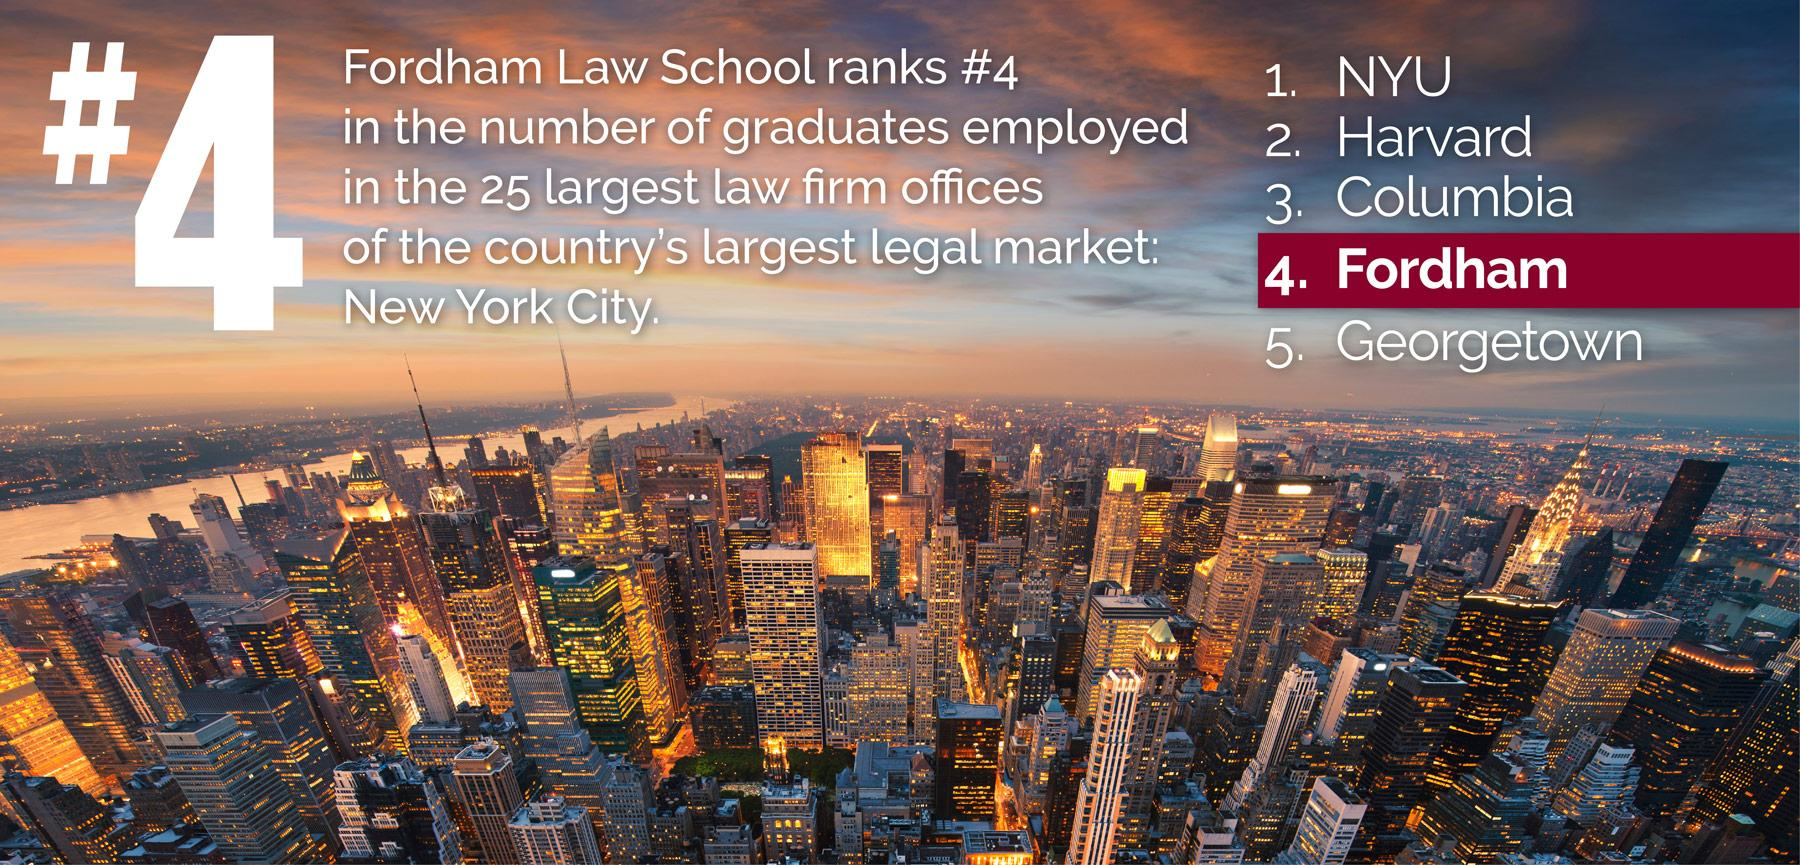 Fordham Law ranks #4 in number of graduates employed at top 25 firms in country's largest legal market: NYC